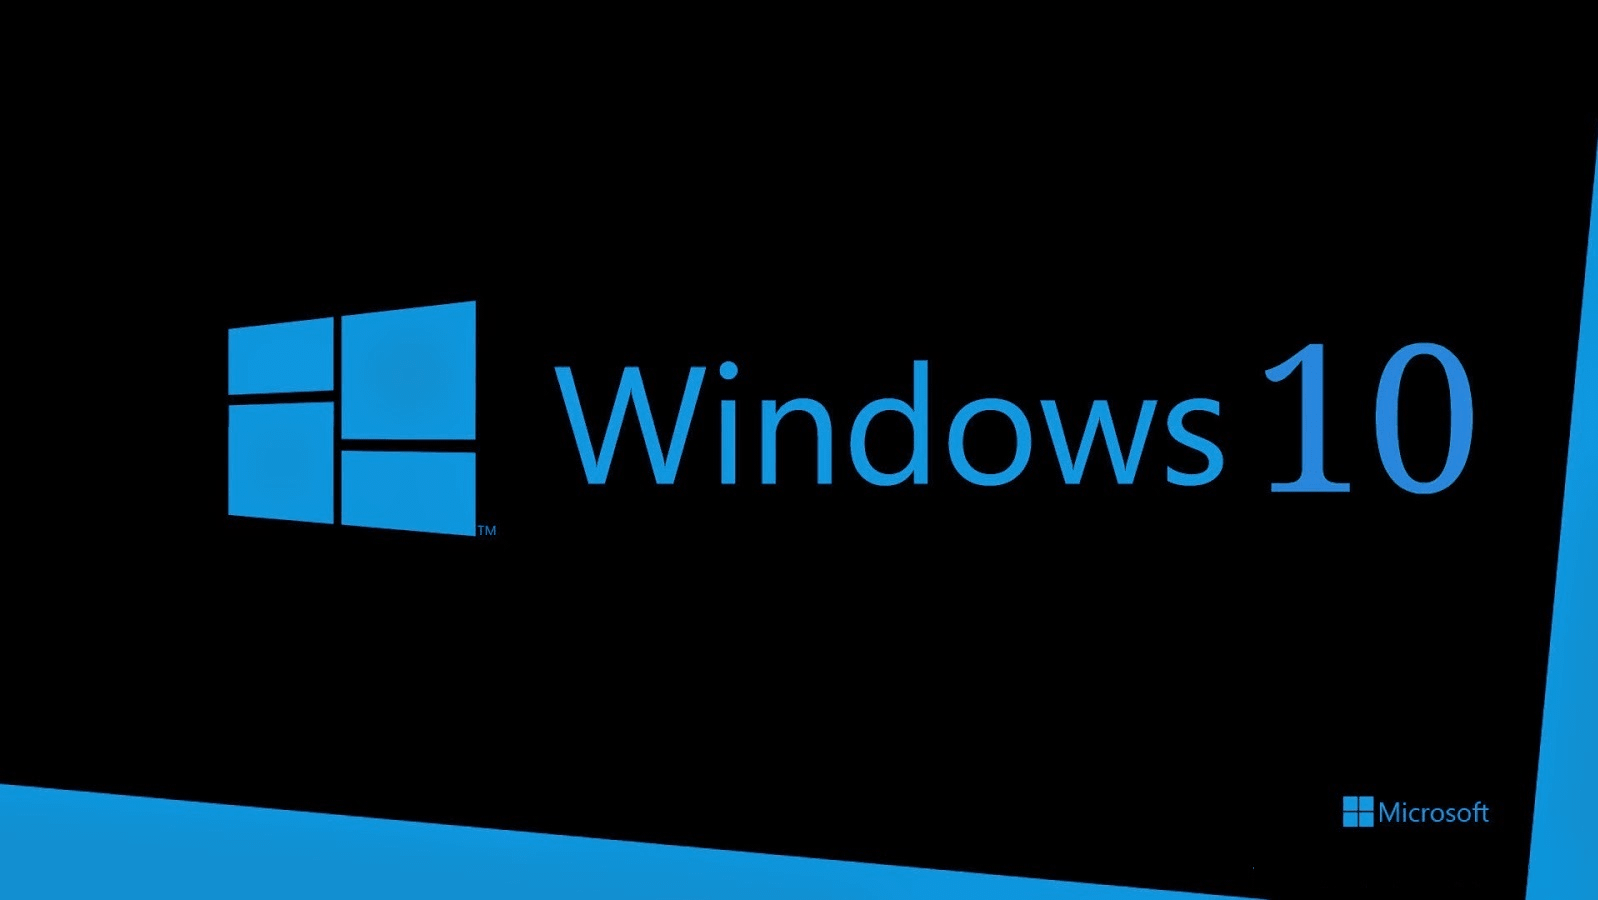 Windows-10-logo-buzzazz